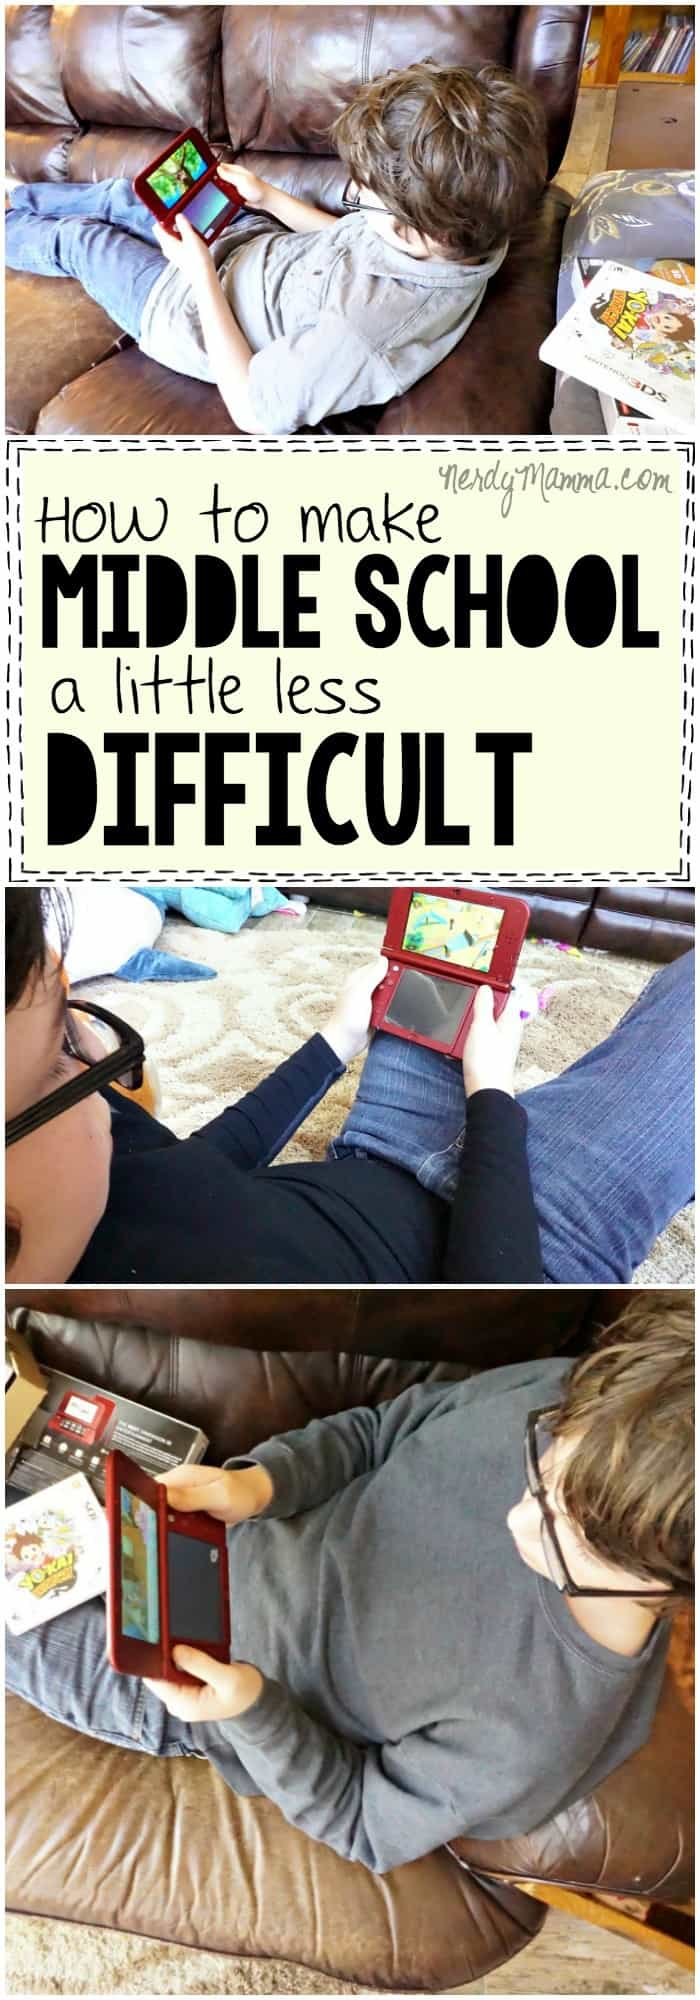 I love these ideas on how to make middle school a little less difficult for the kiddos going through it. Such great ideas.